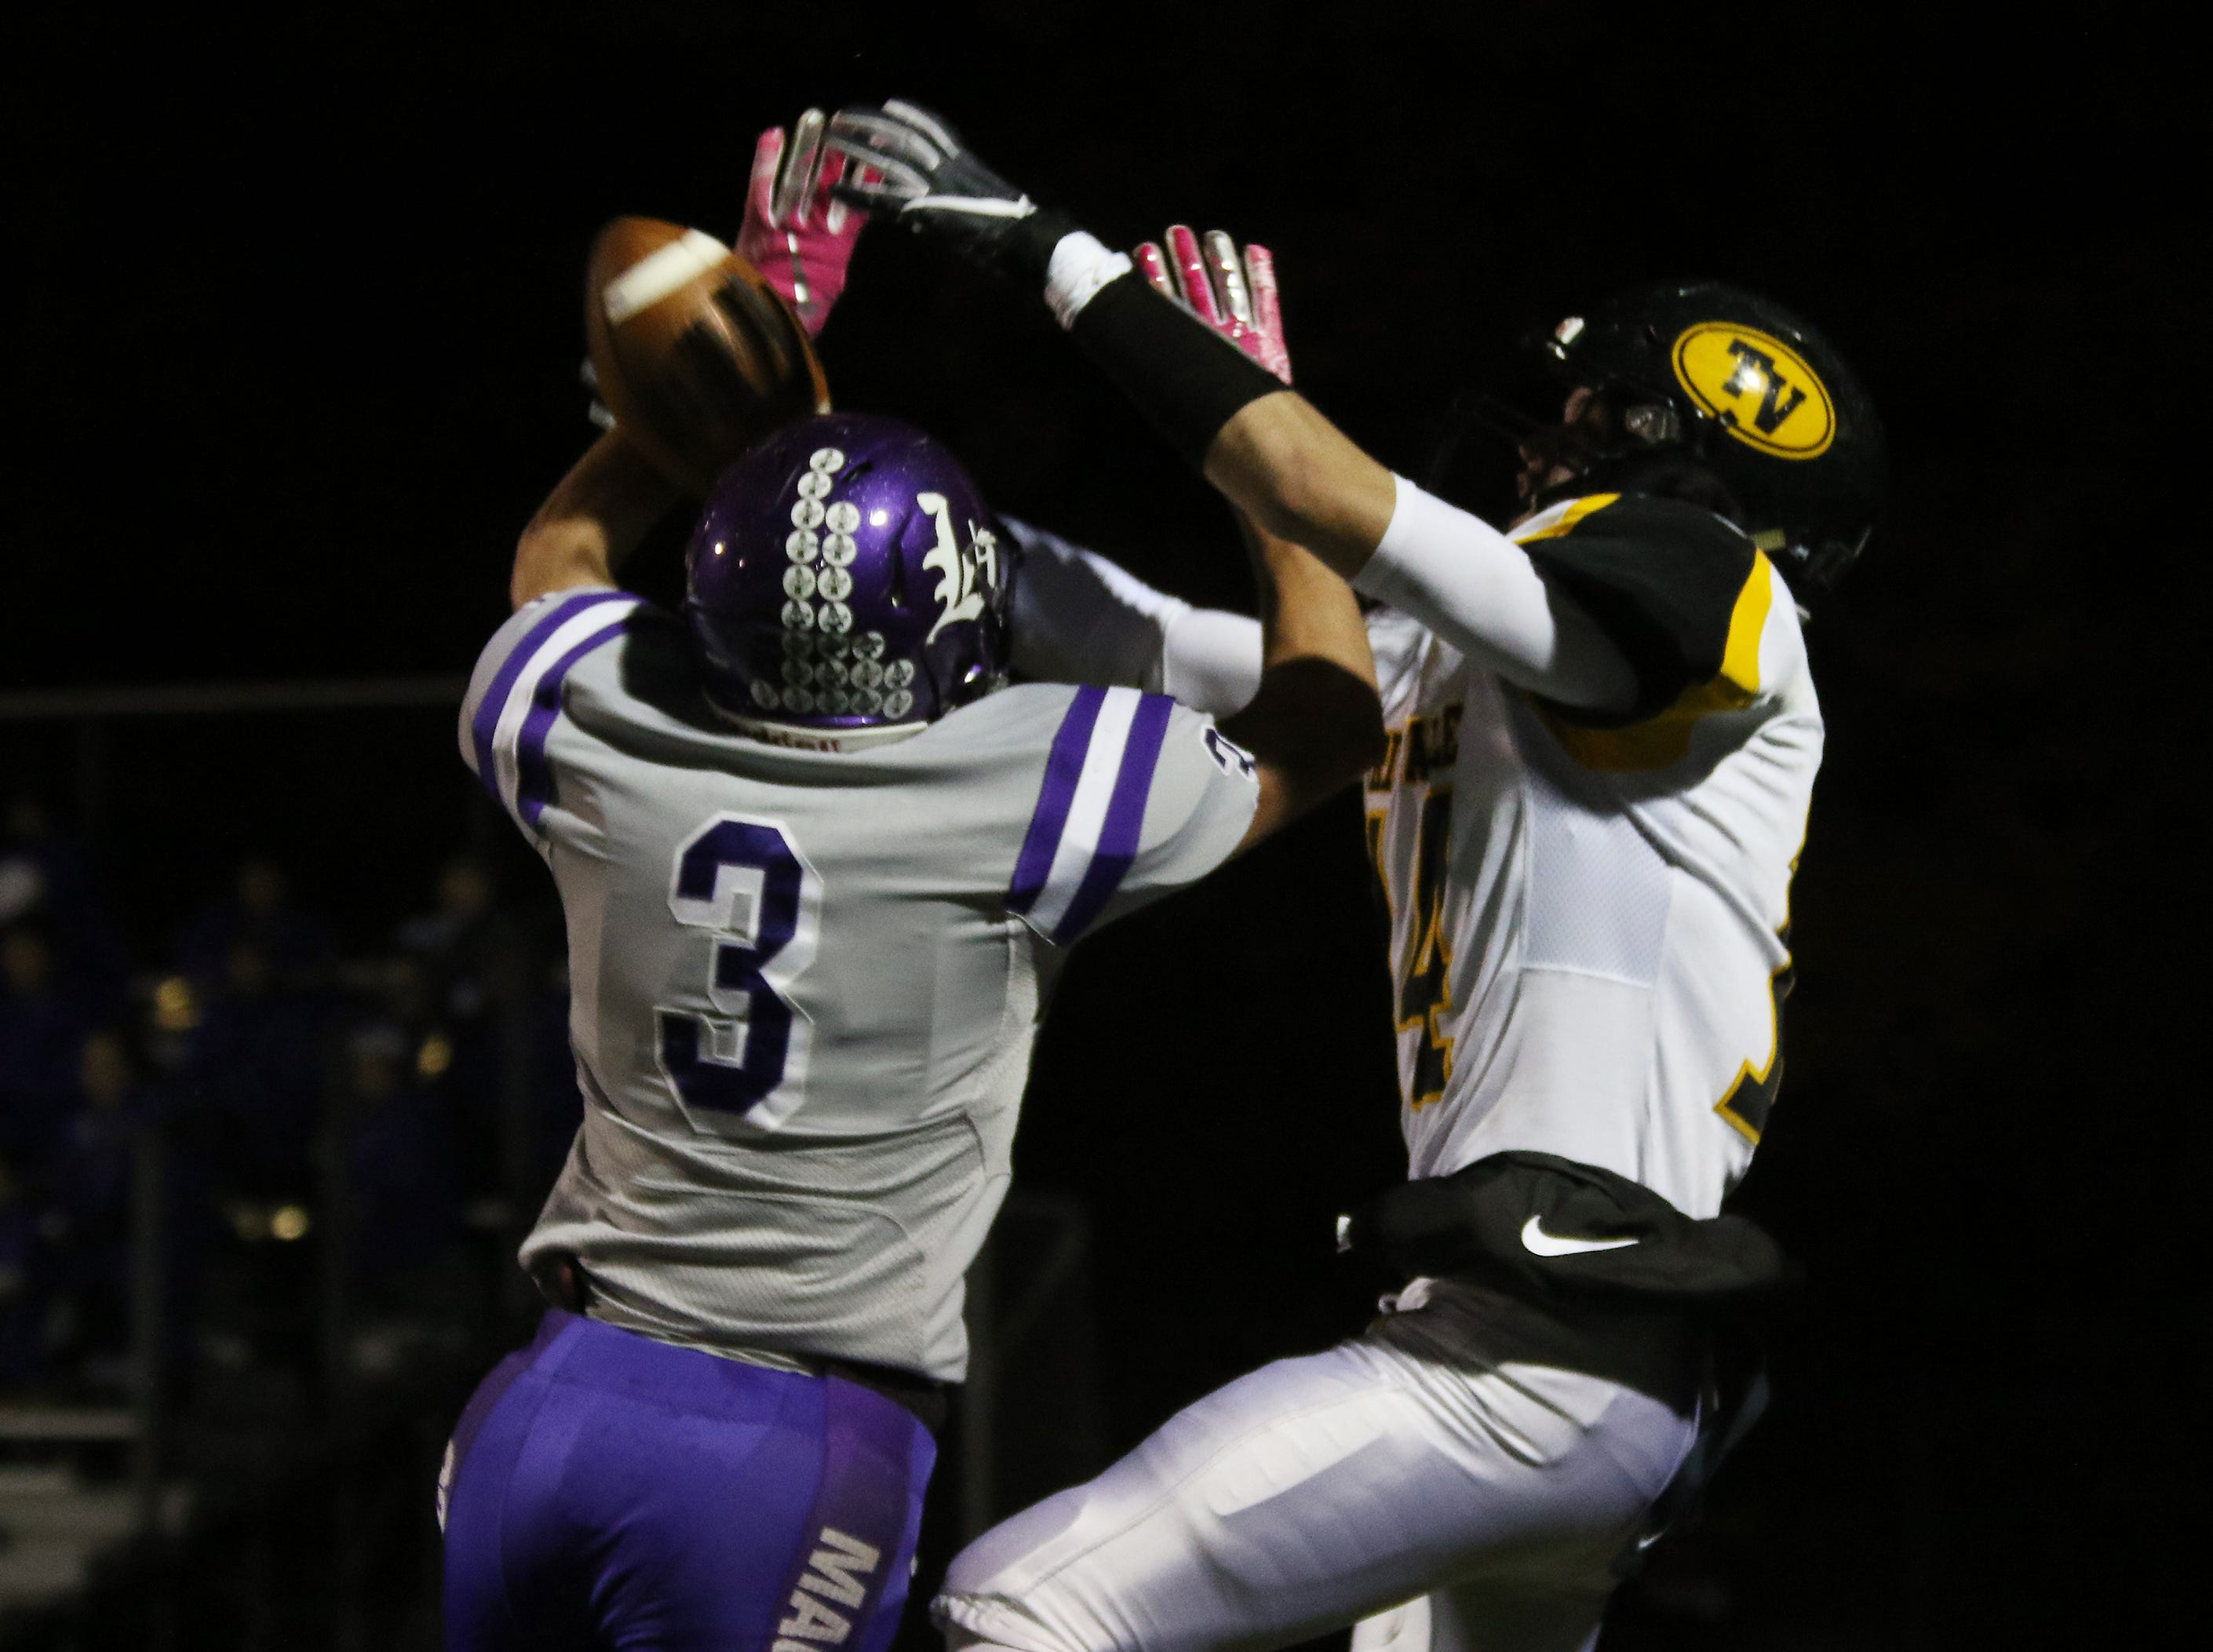 Barberton's Spencer Hutchison breaks up a pass intended for Tri-Valley's Keaton Williams.